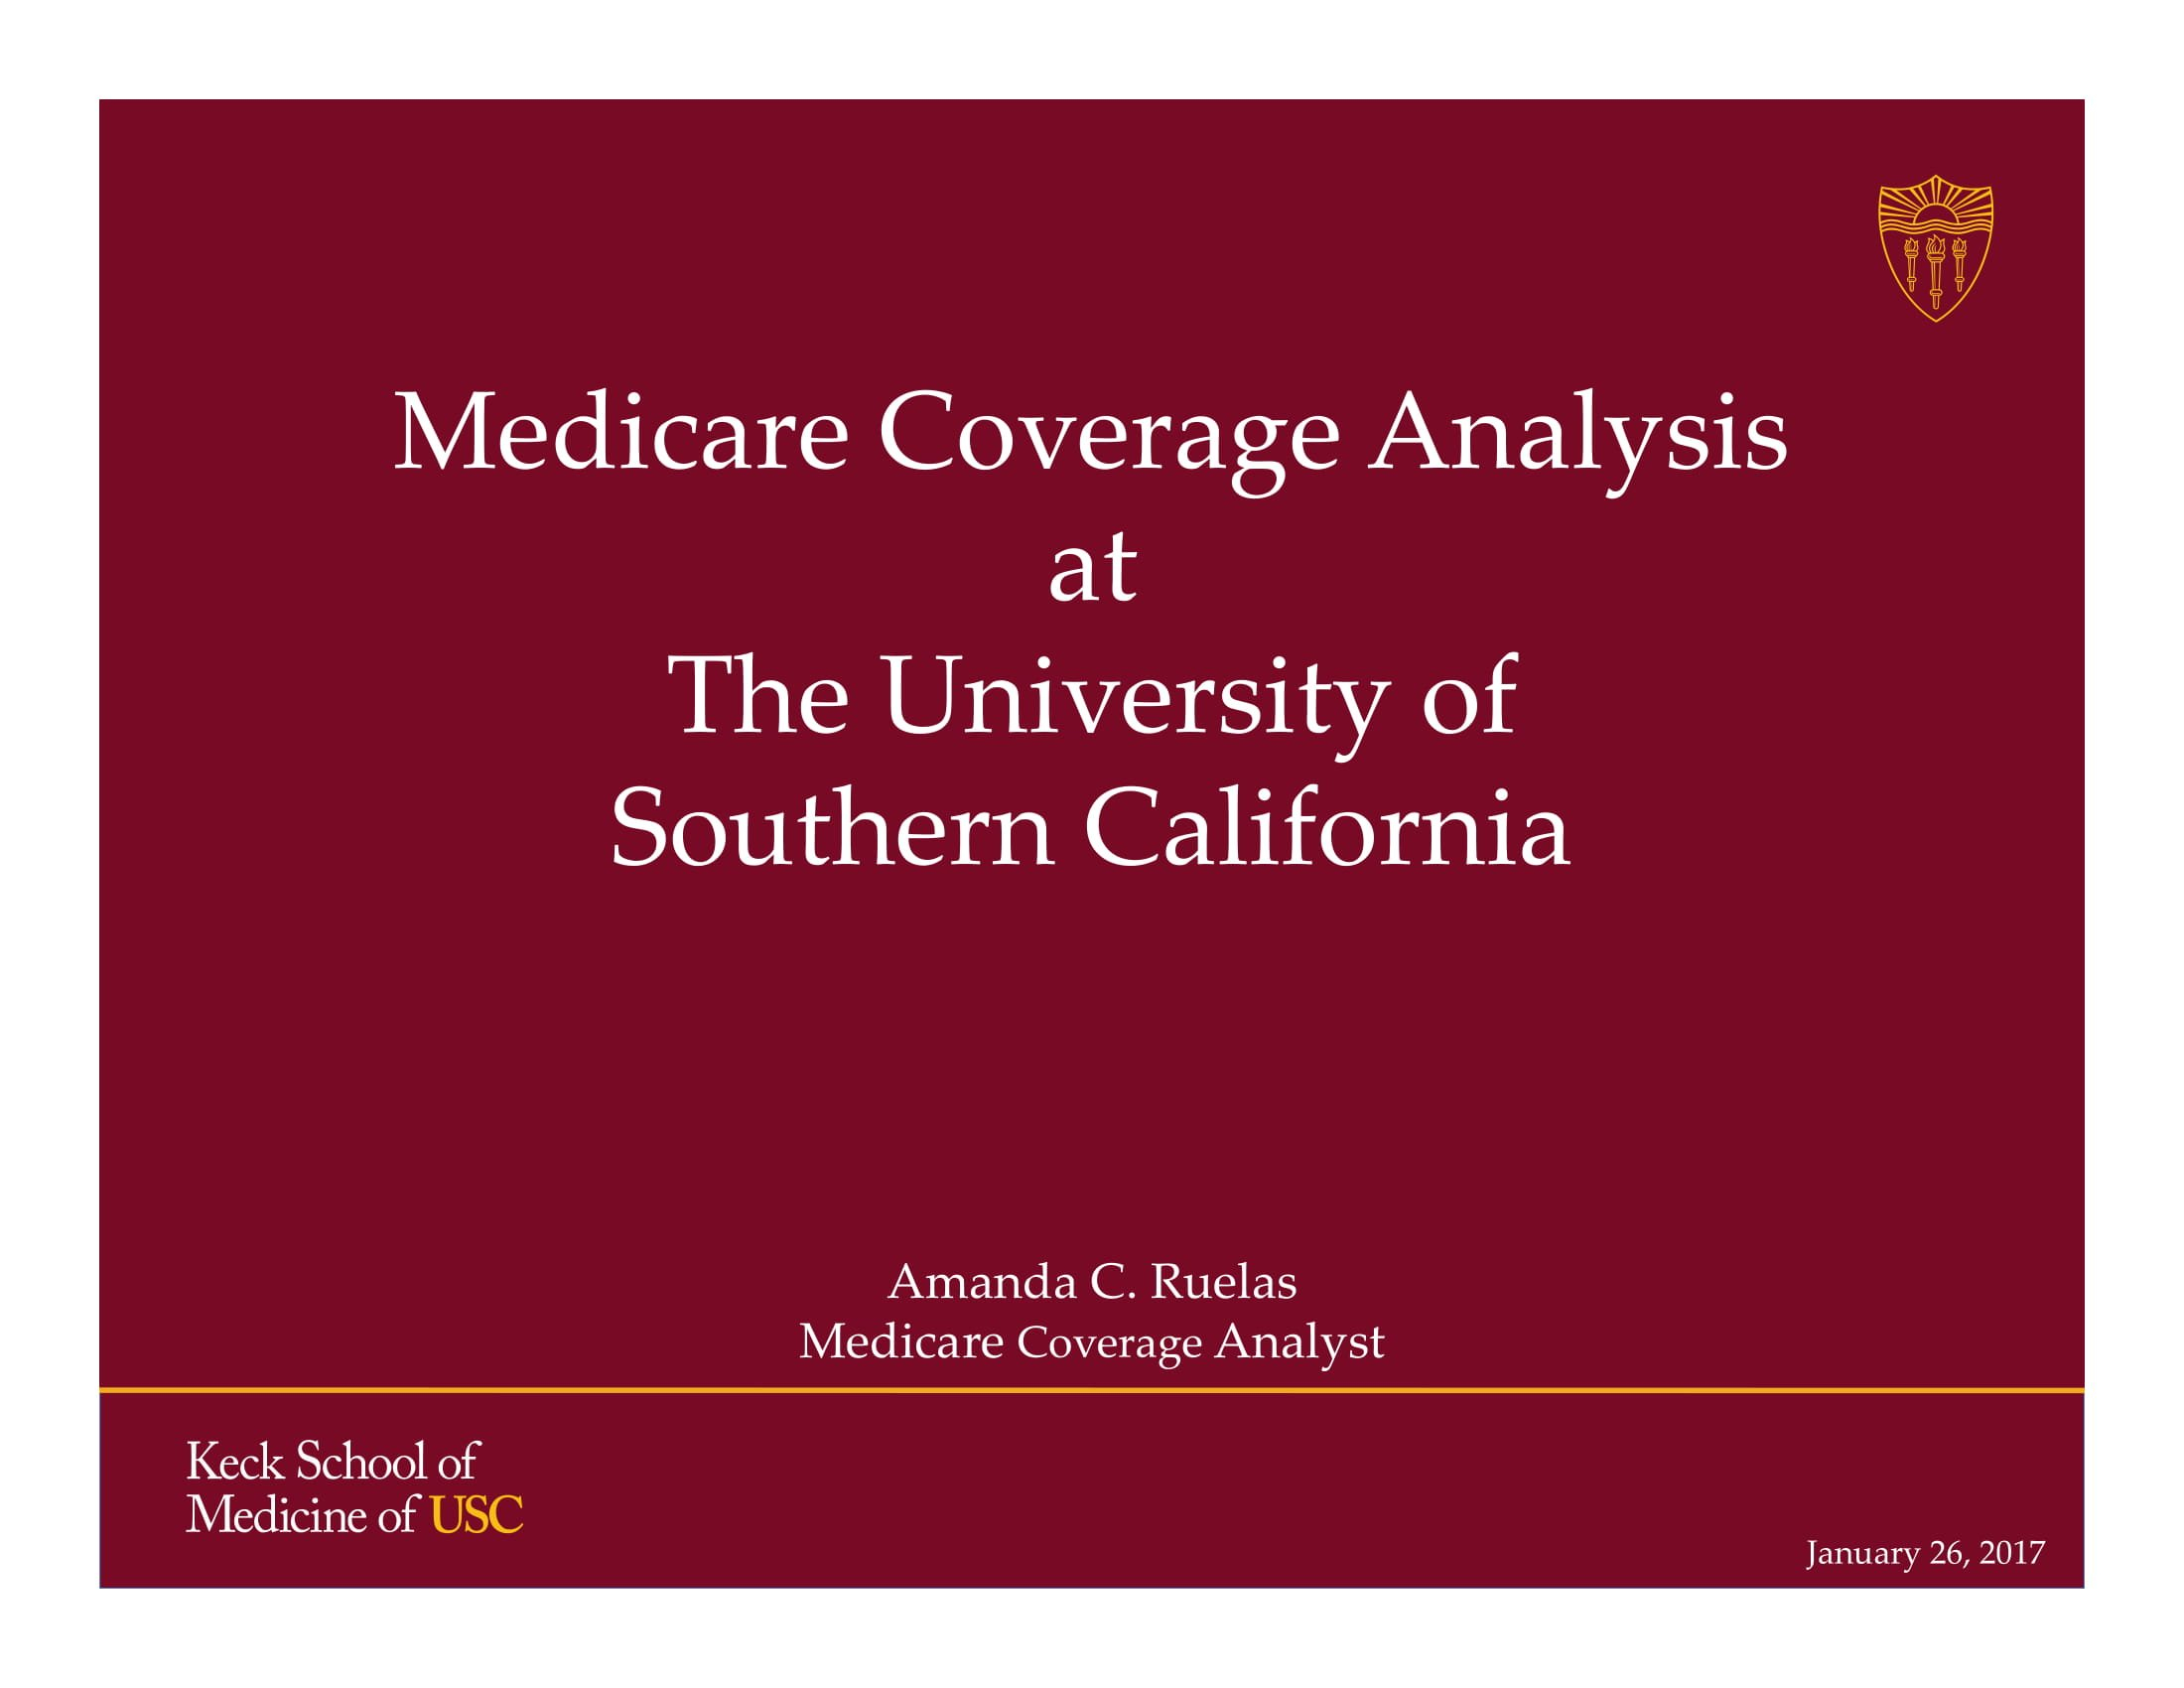 10 Medicare Coverage Analysis Examples  Pdf  Examples Together With Medicare Coverage Analysis Worksheet